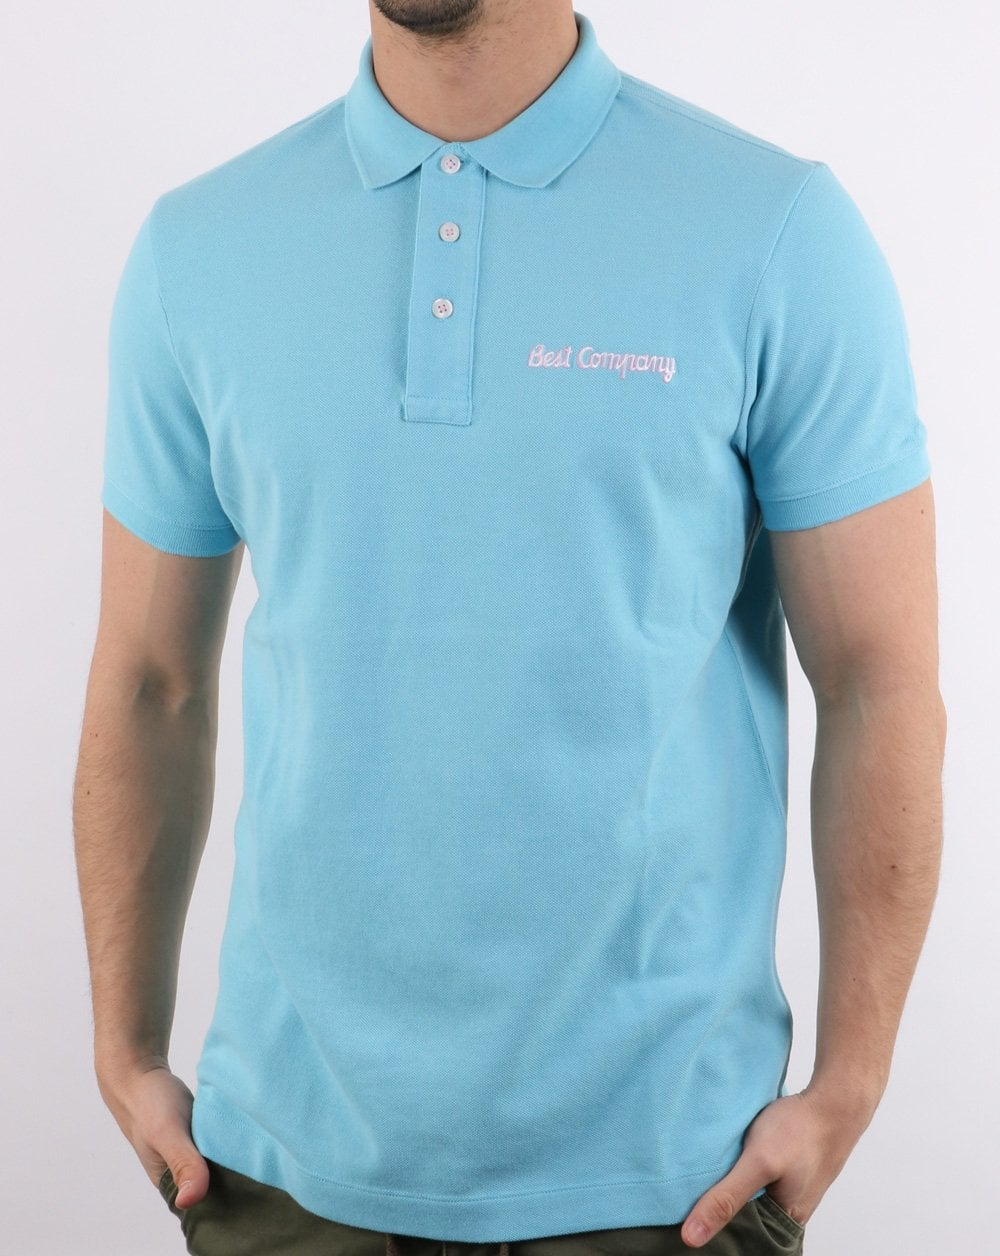 Best Company Pique Polo Shirt Sky